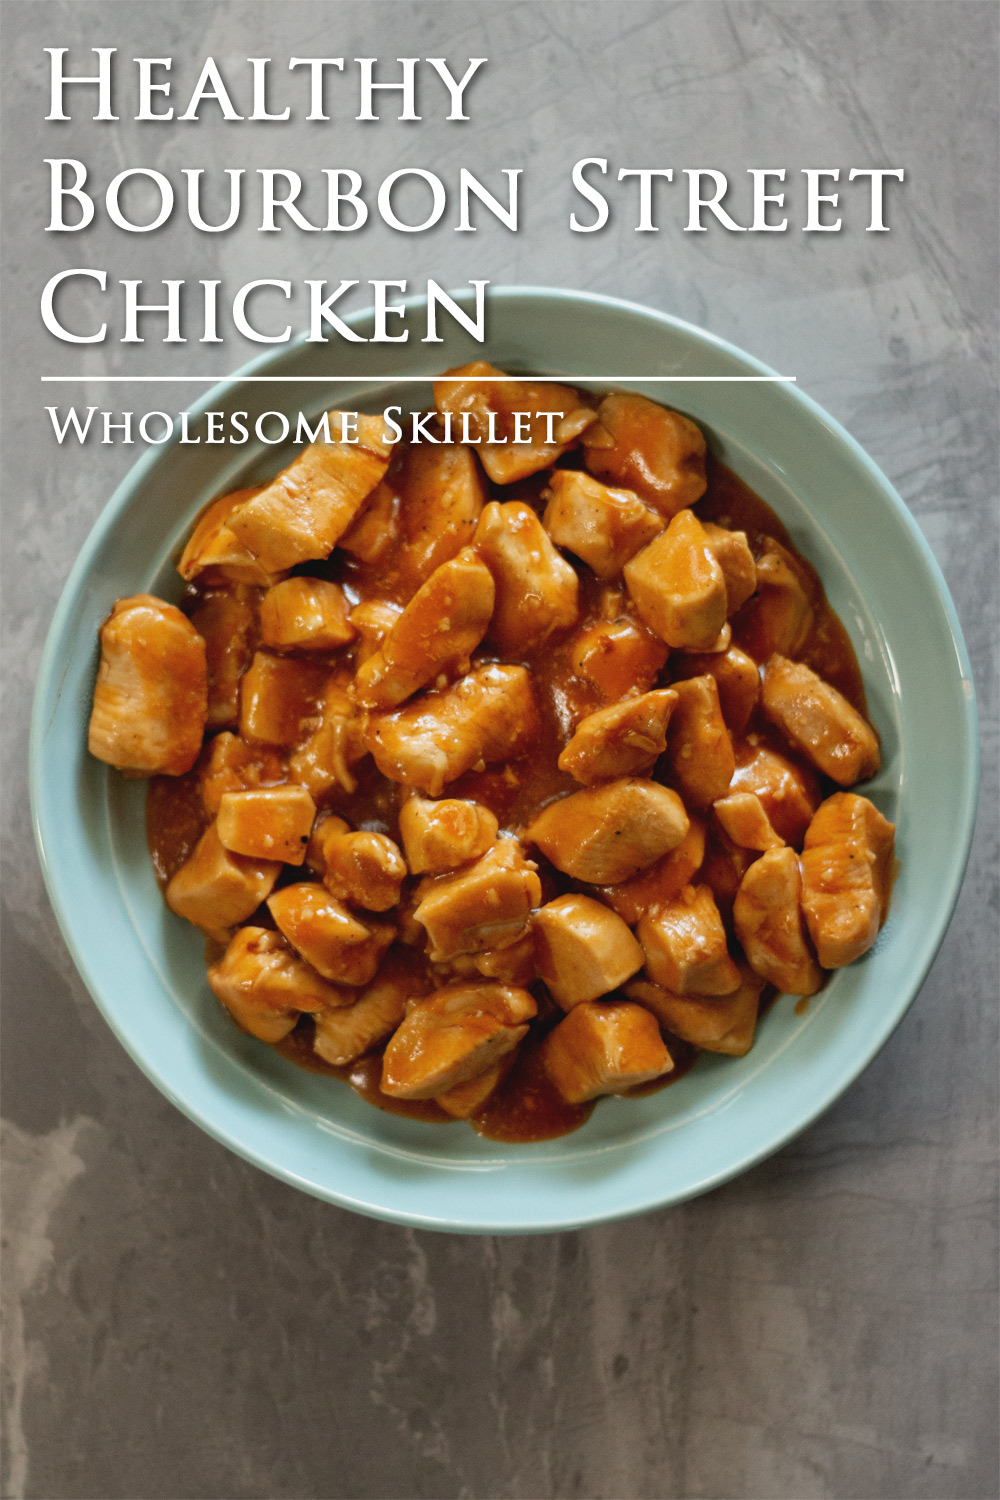 A delicious and healthy version of Bourbon Street Chicken that is ready in about 30 minutes. A great meal for a busy night.